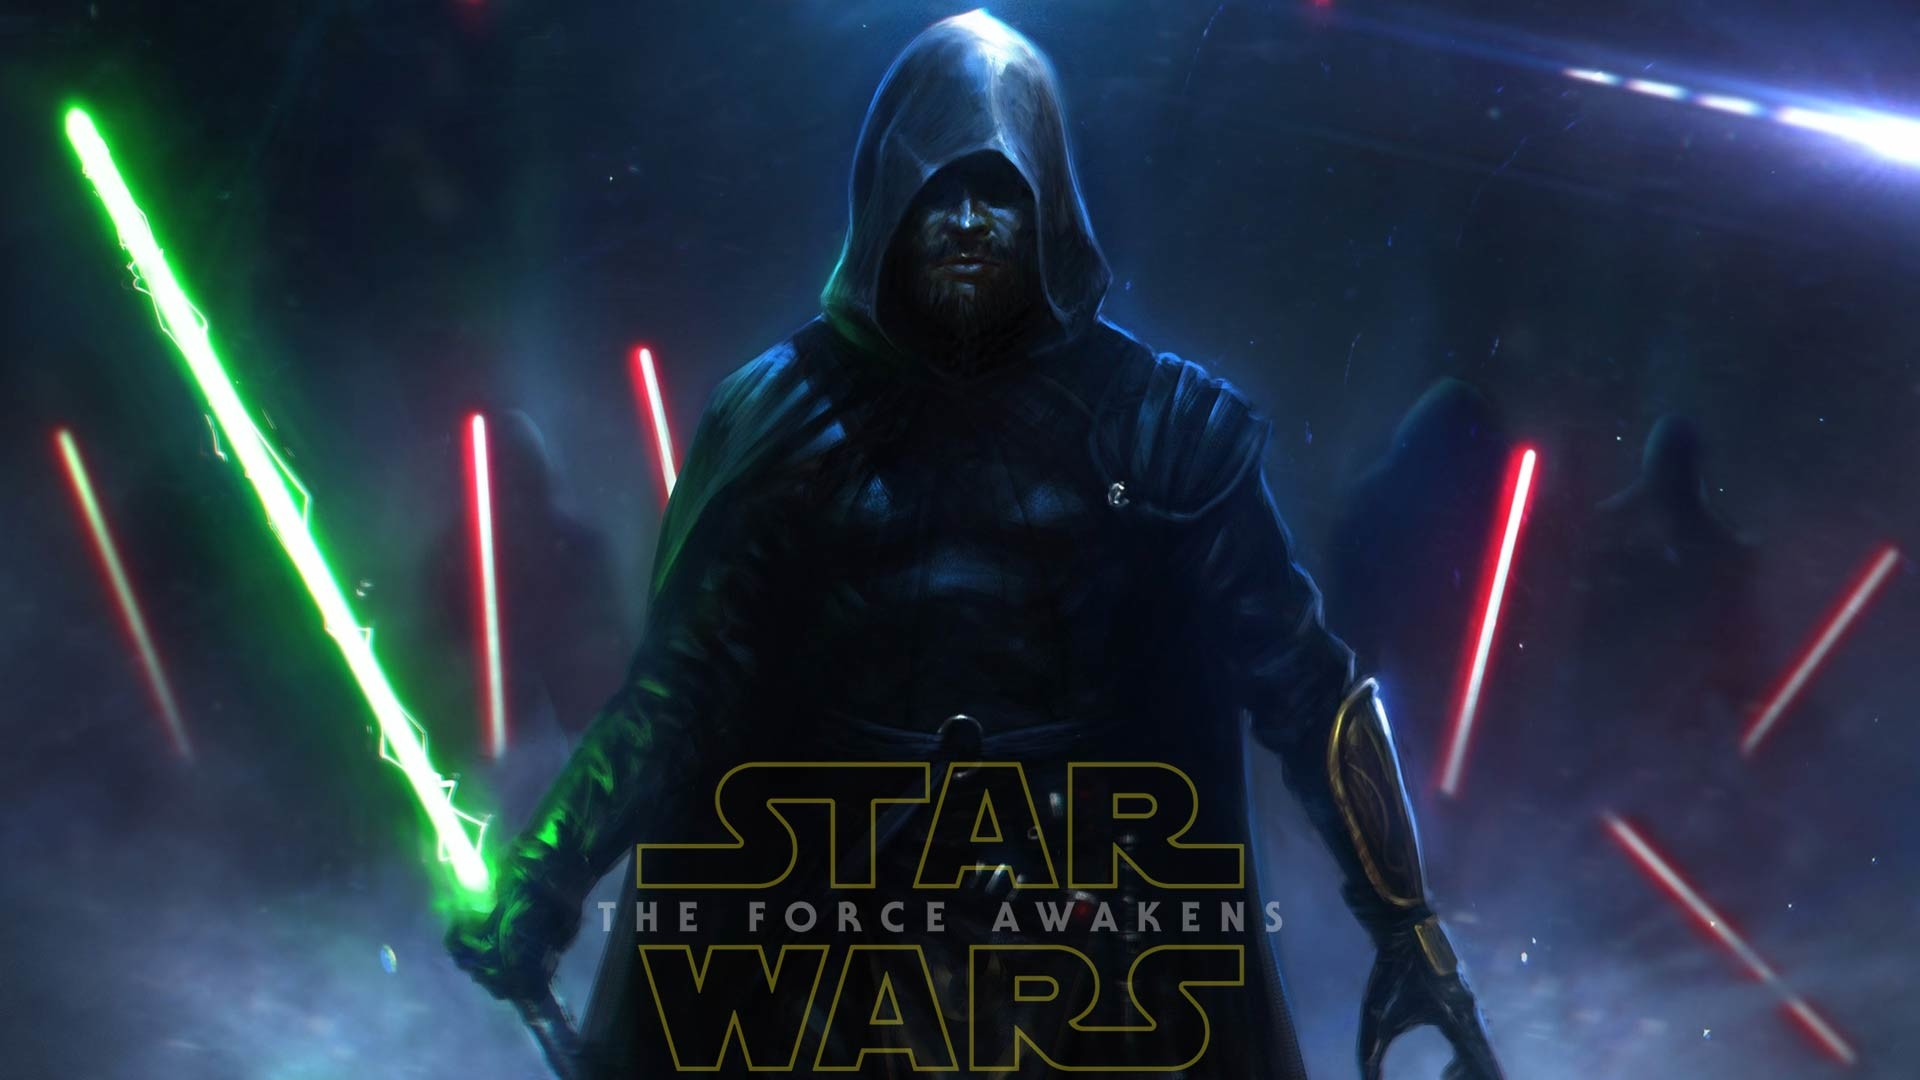 134 Star Wars Live Wallpaper Android